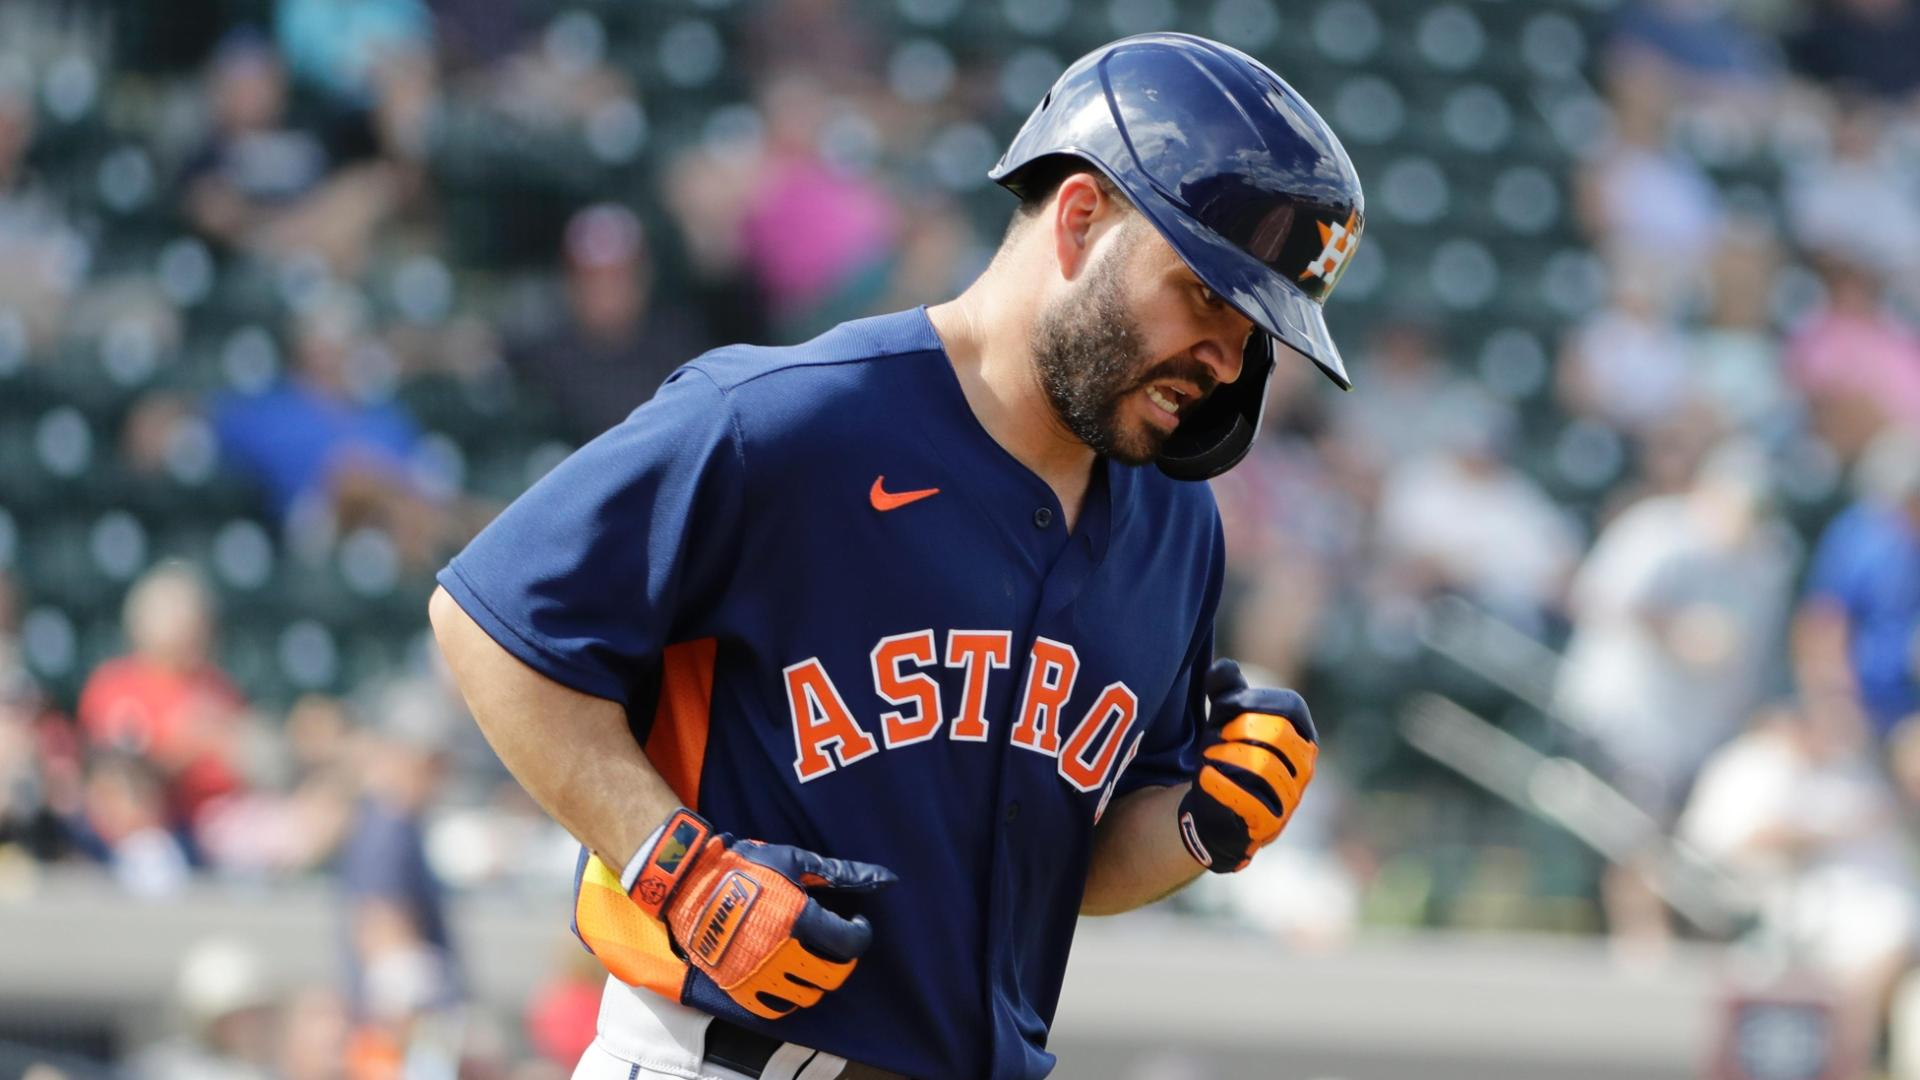 Altuve booed, hit by pitch in spring training debut